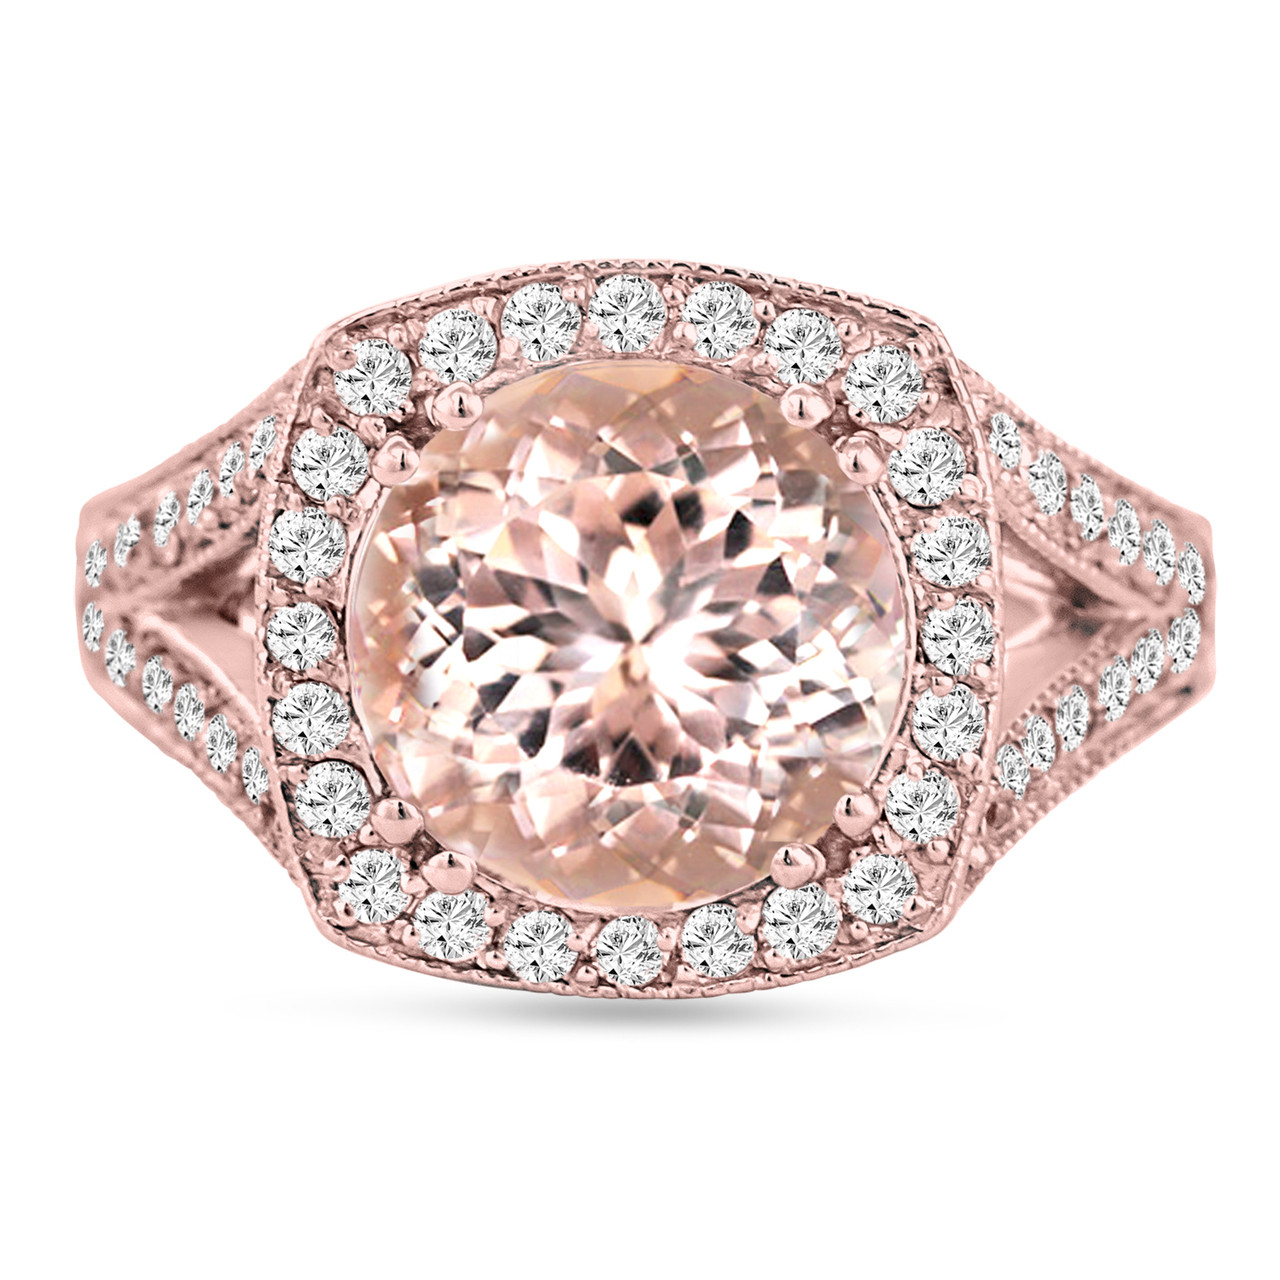 f073e46733bfb Peach Pink Morganite Engagement Ring 14K Rose Gold 3.00 Carat Halo Pave  Handmade Certified Huge